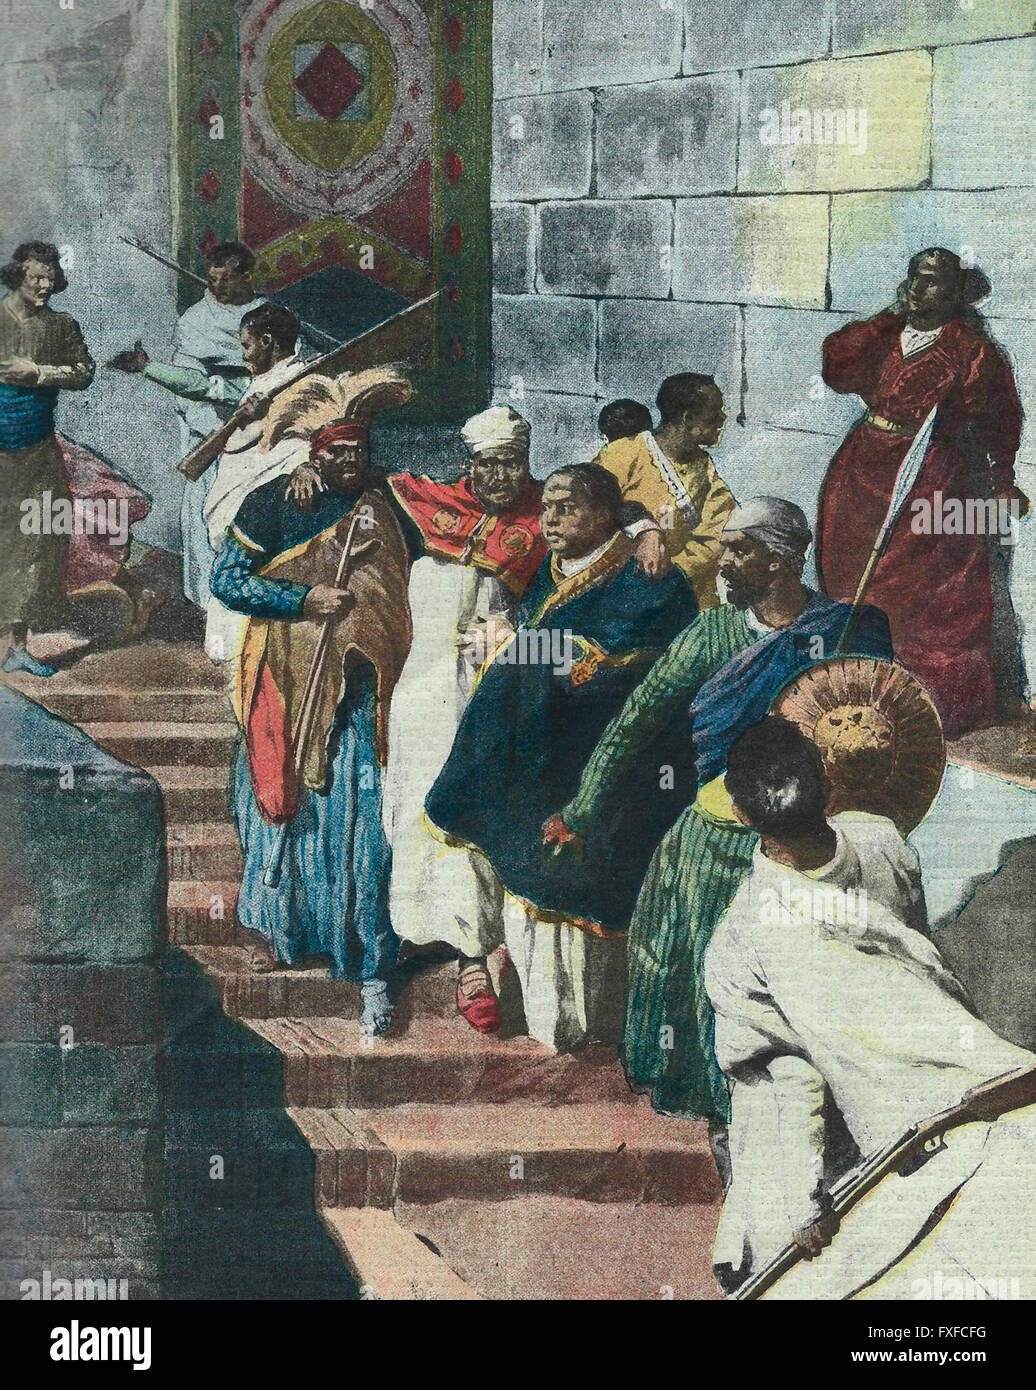 The conflict at the court in Addis Ababa : The old and infirm Menelik is rescued from underground 1913 - Stock Image